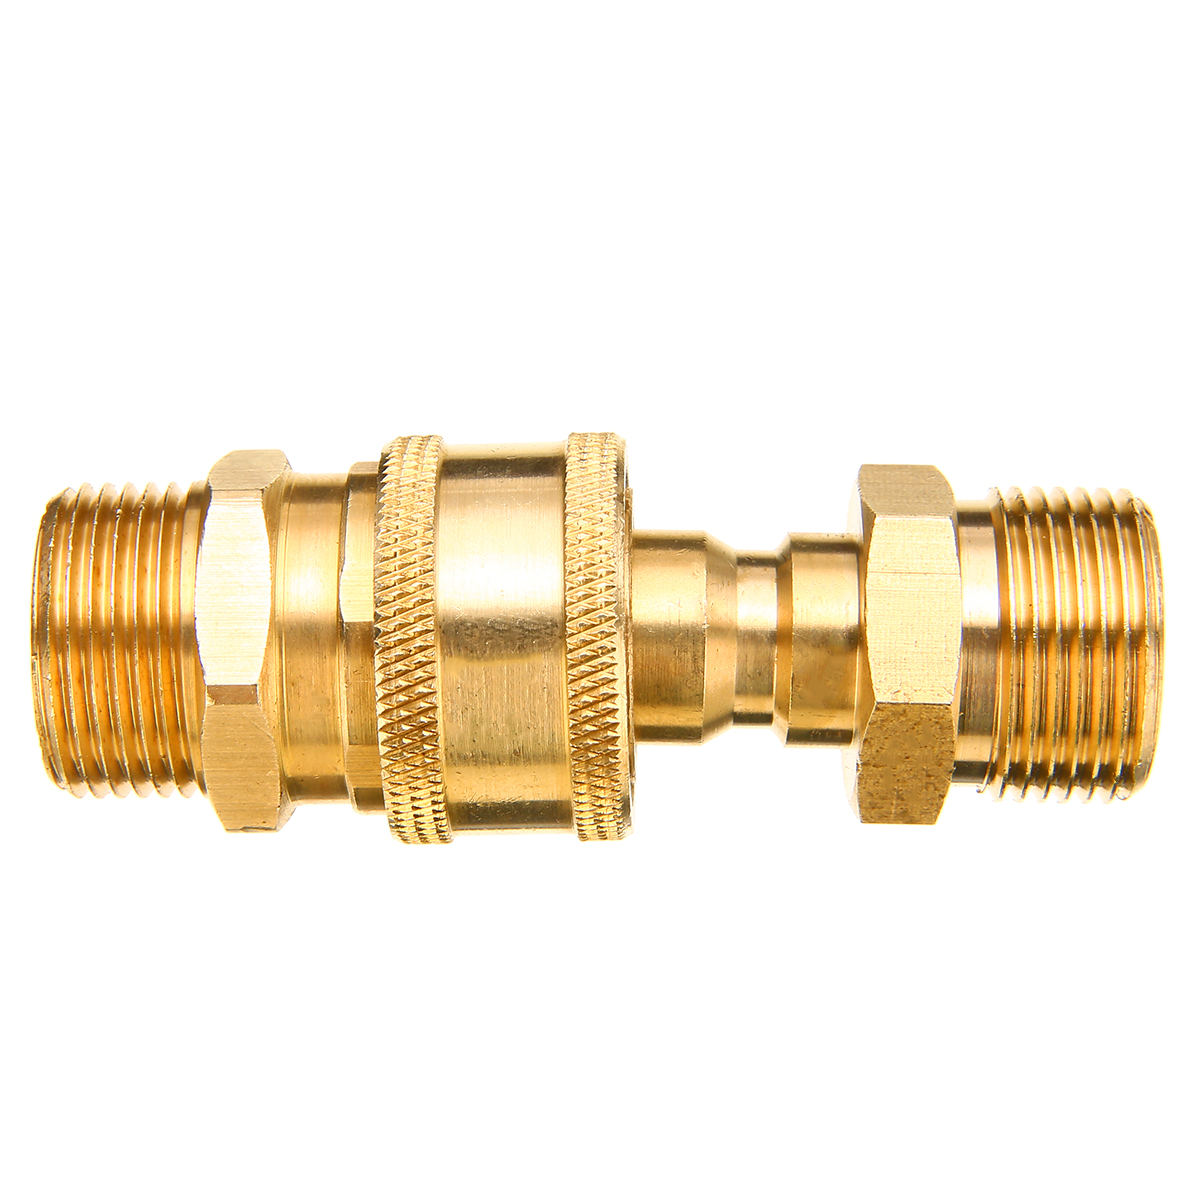 1 Pair Brass 3/8 inch Washer Adapter M22 Quick Release Pressure Washer Connector Adapter Coupling 14.8MM High Qualiyu Mayitr